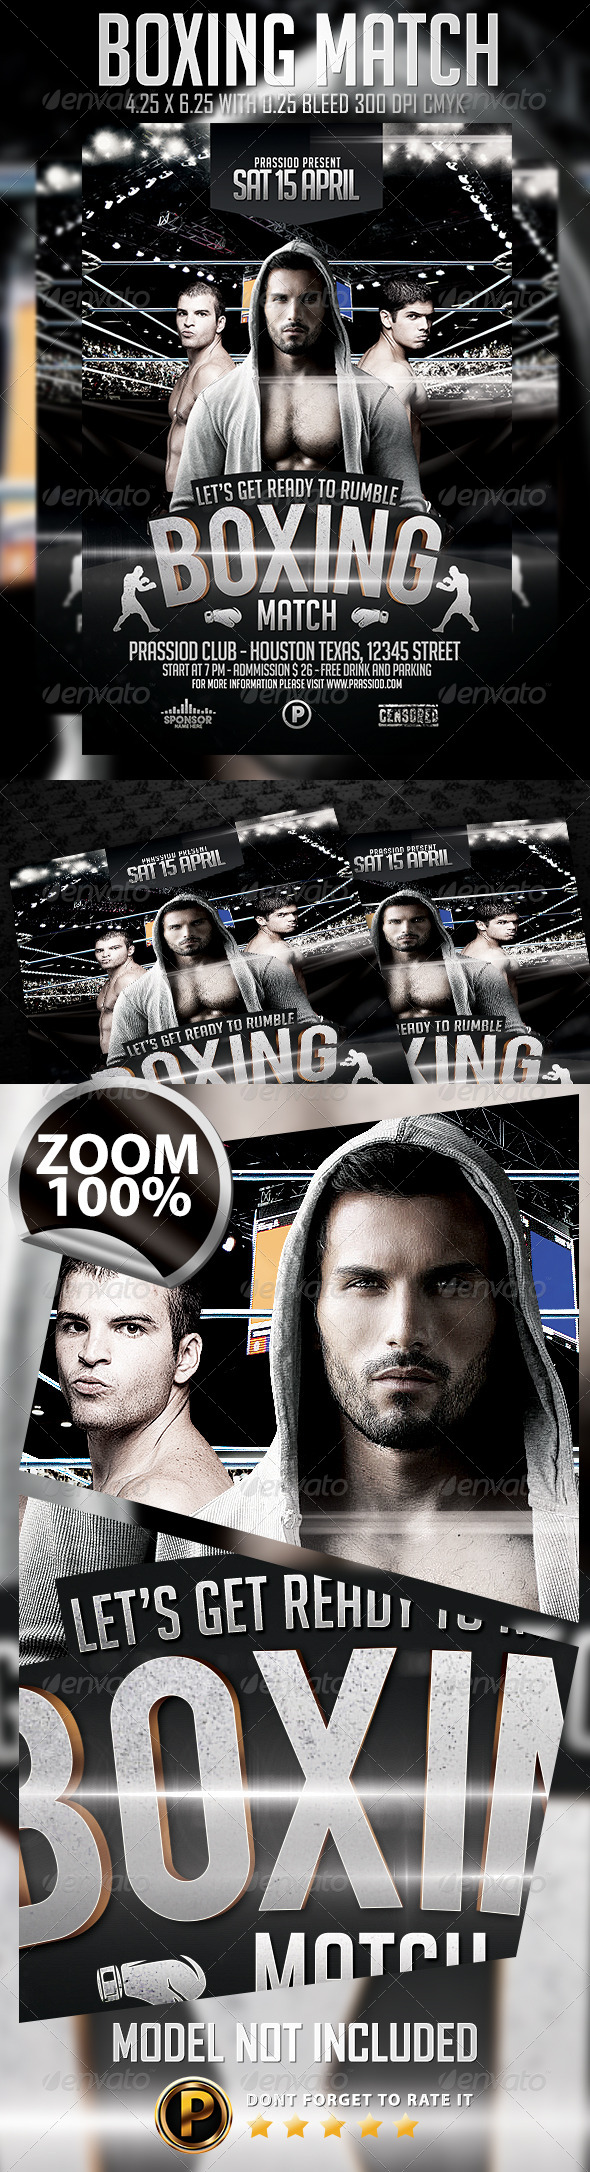 Boxing Match Flyer Template - Sports Events